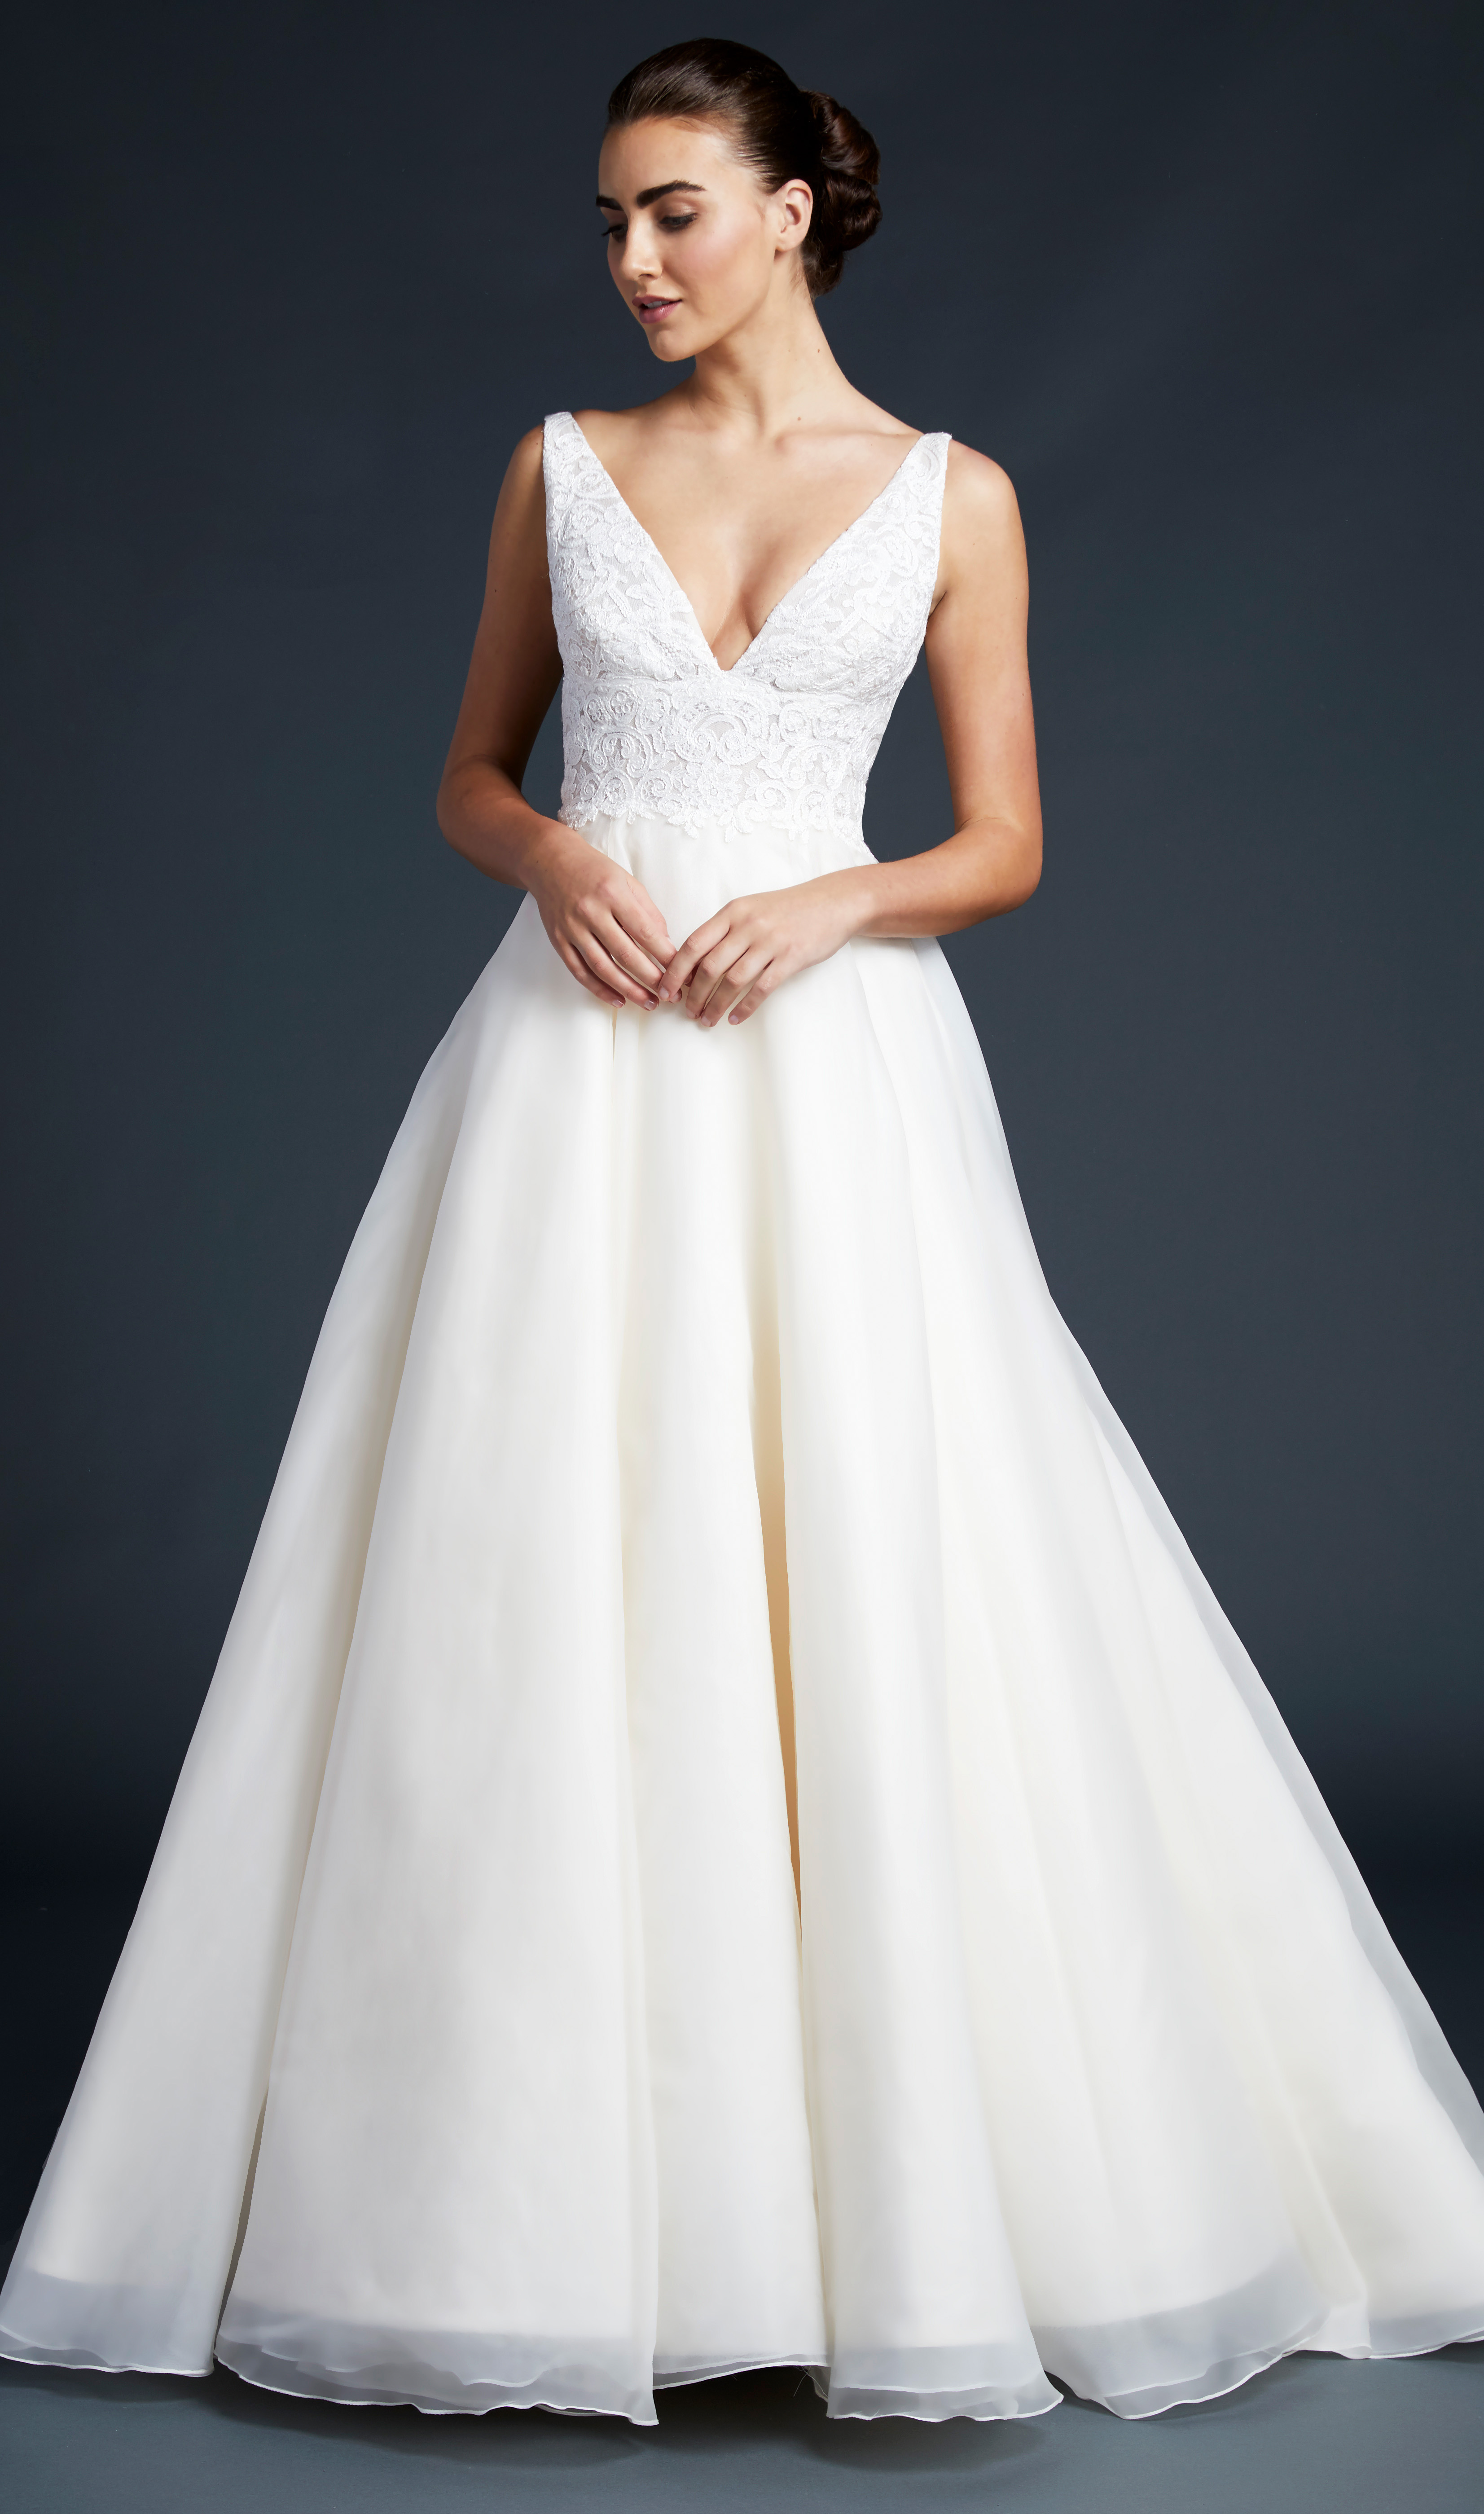 blue willow wedding dress v-neck lace top a-line